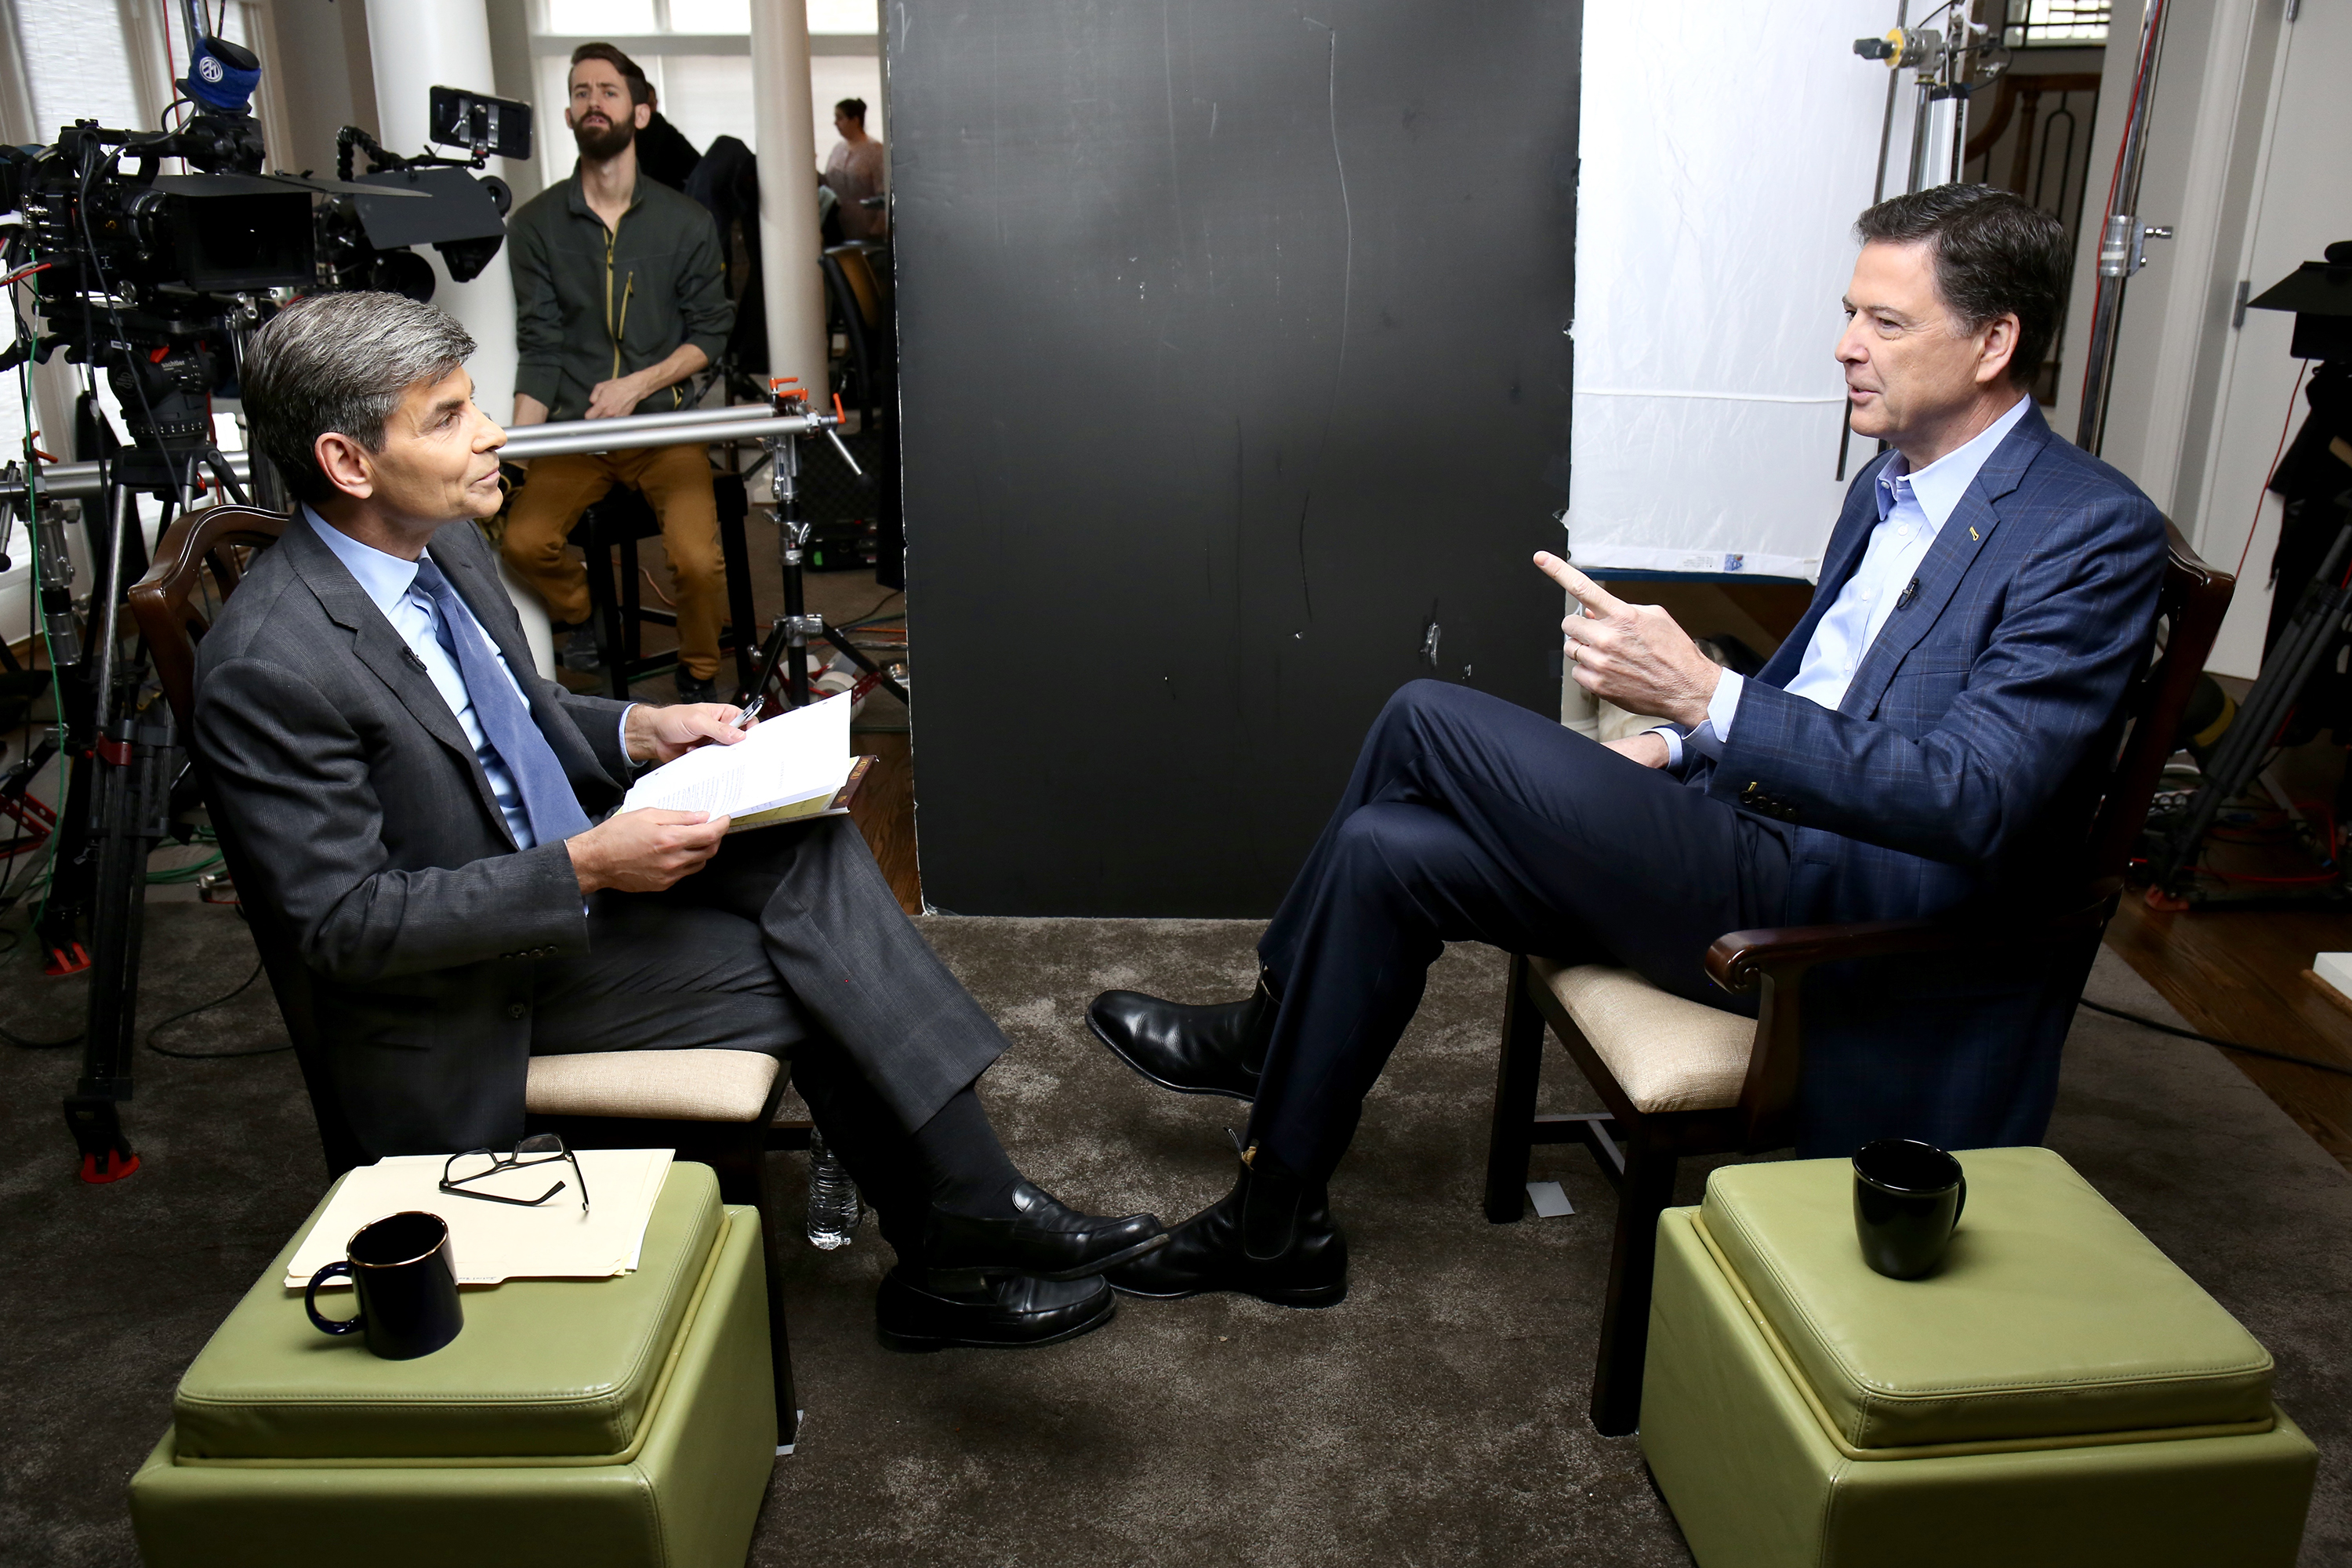 FBI Insiders Furious After James Comey's ABC Interview